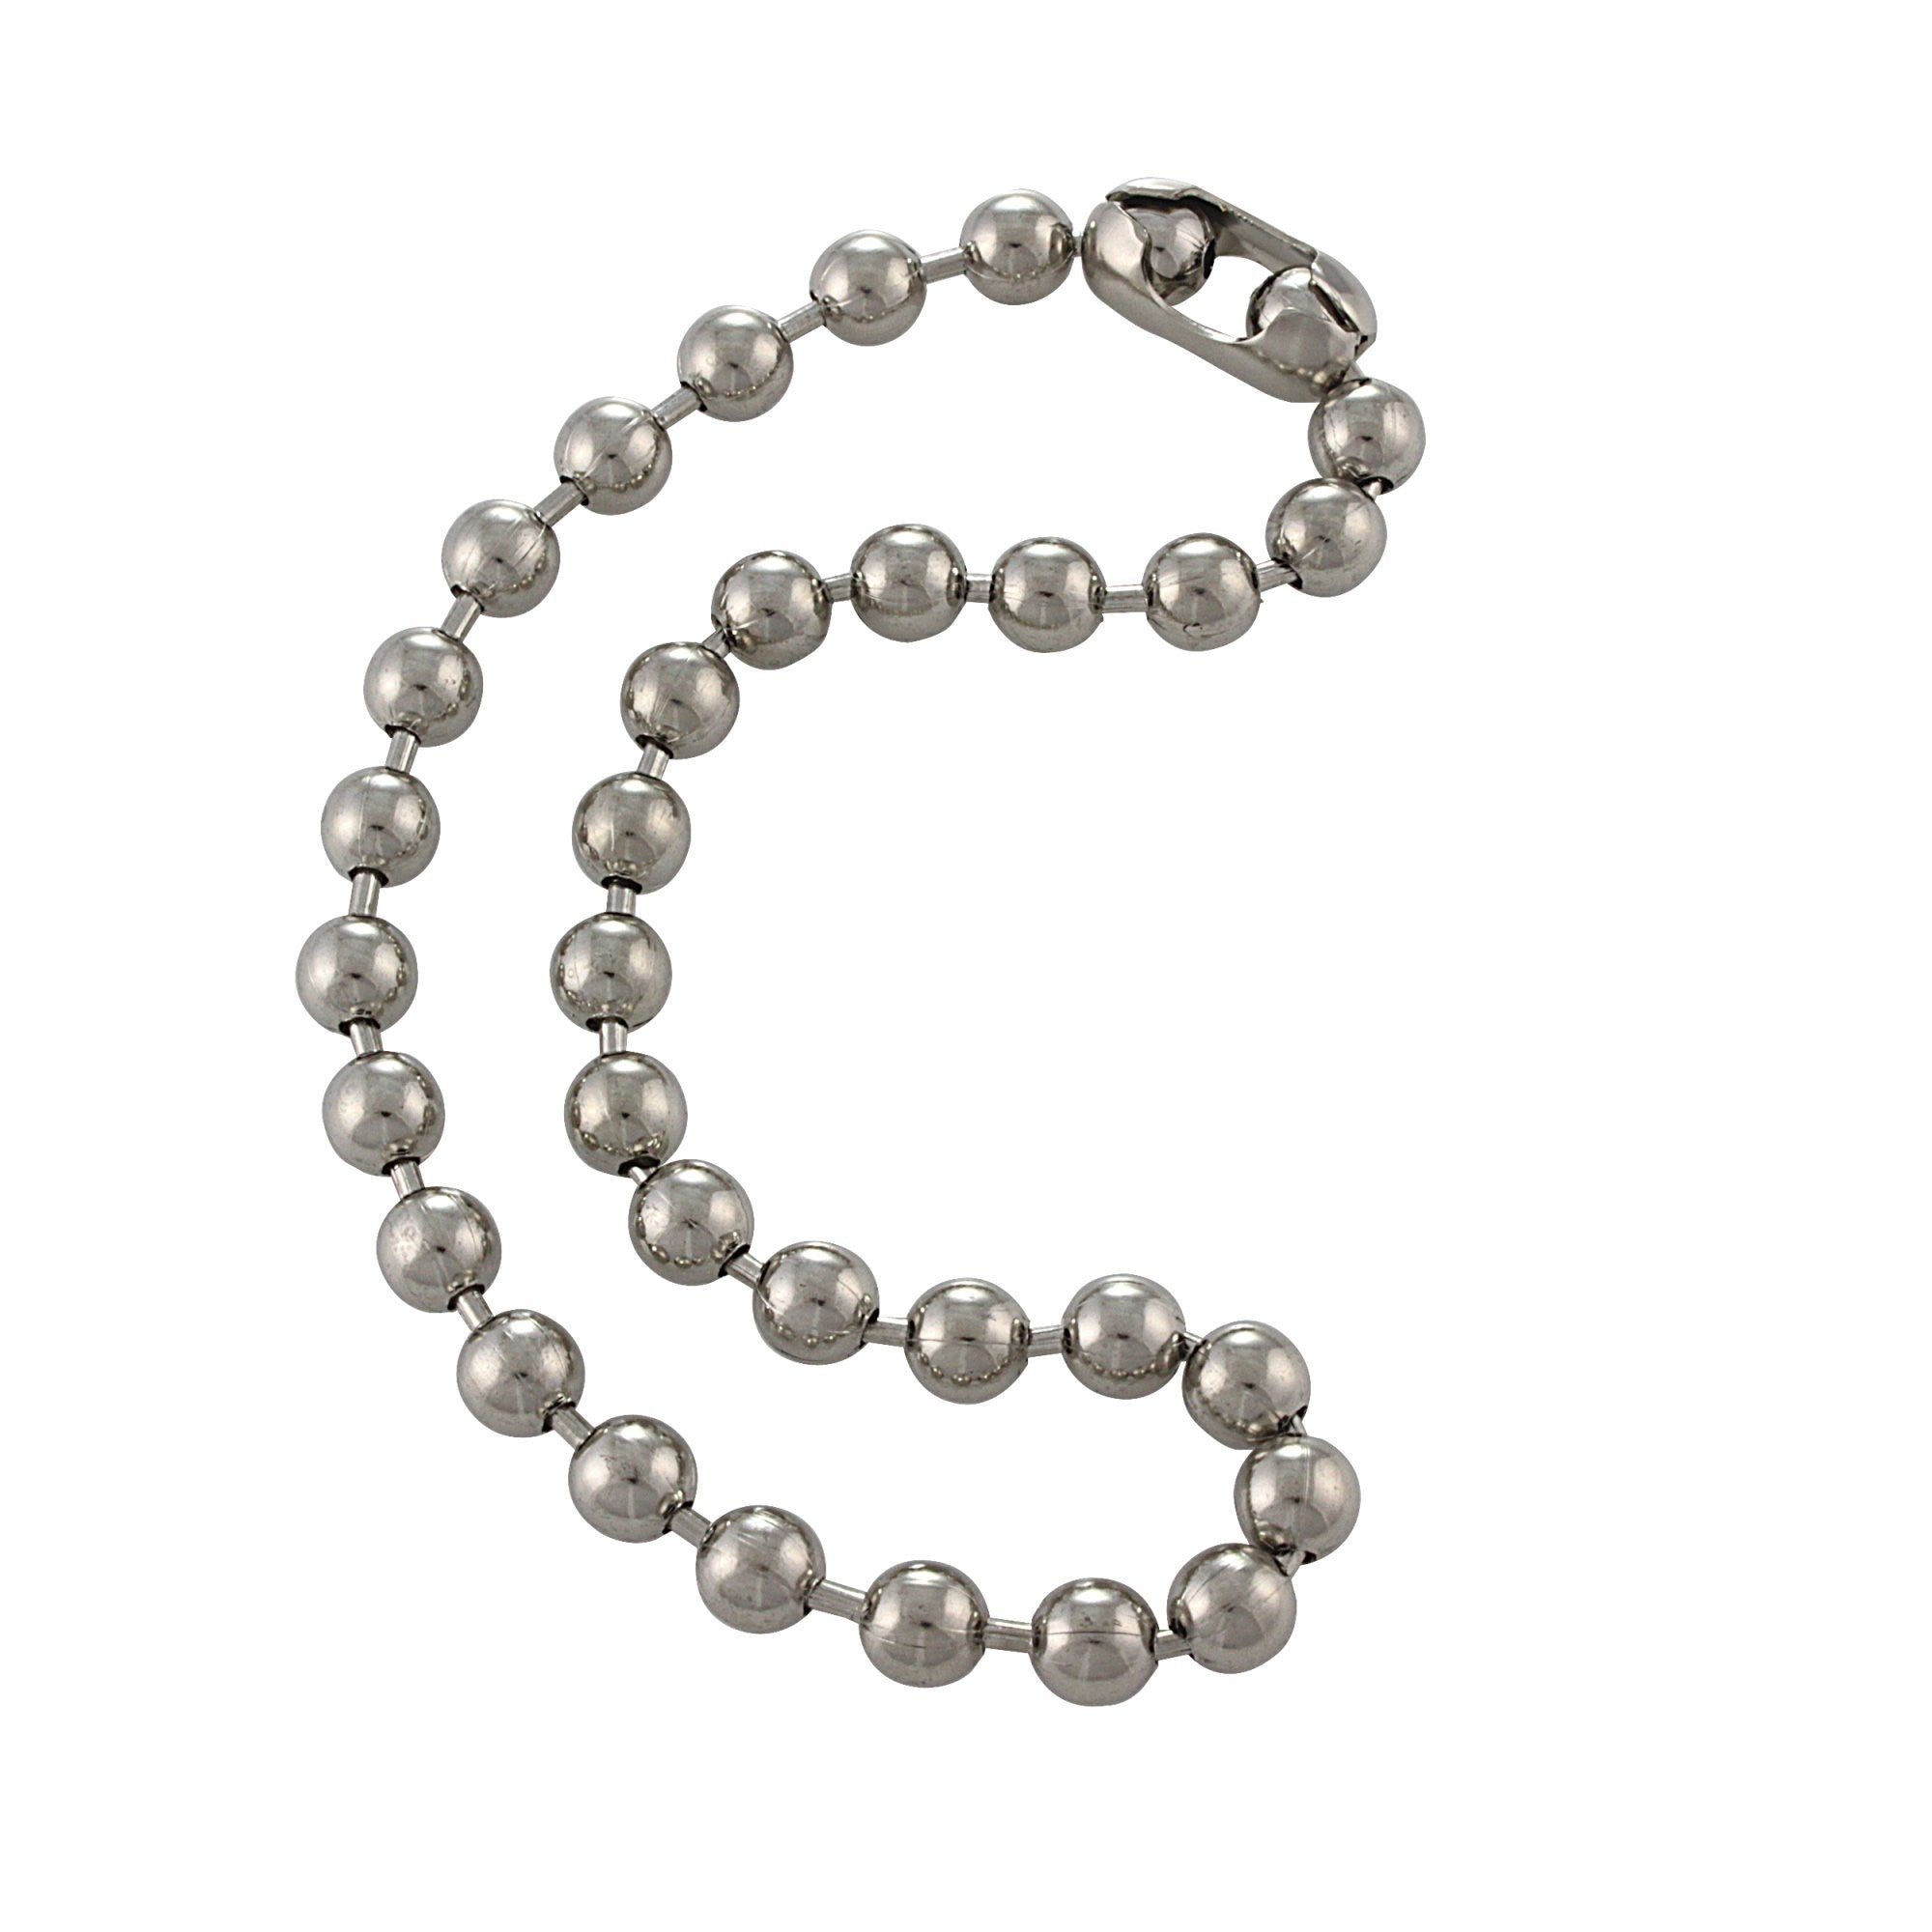 bling chains sterling jewelry ball mm mens necklace steel cable chain curb plated stainless cute tiny wholesale gold vermeil bulk beaded in medium silver cuban